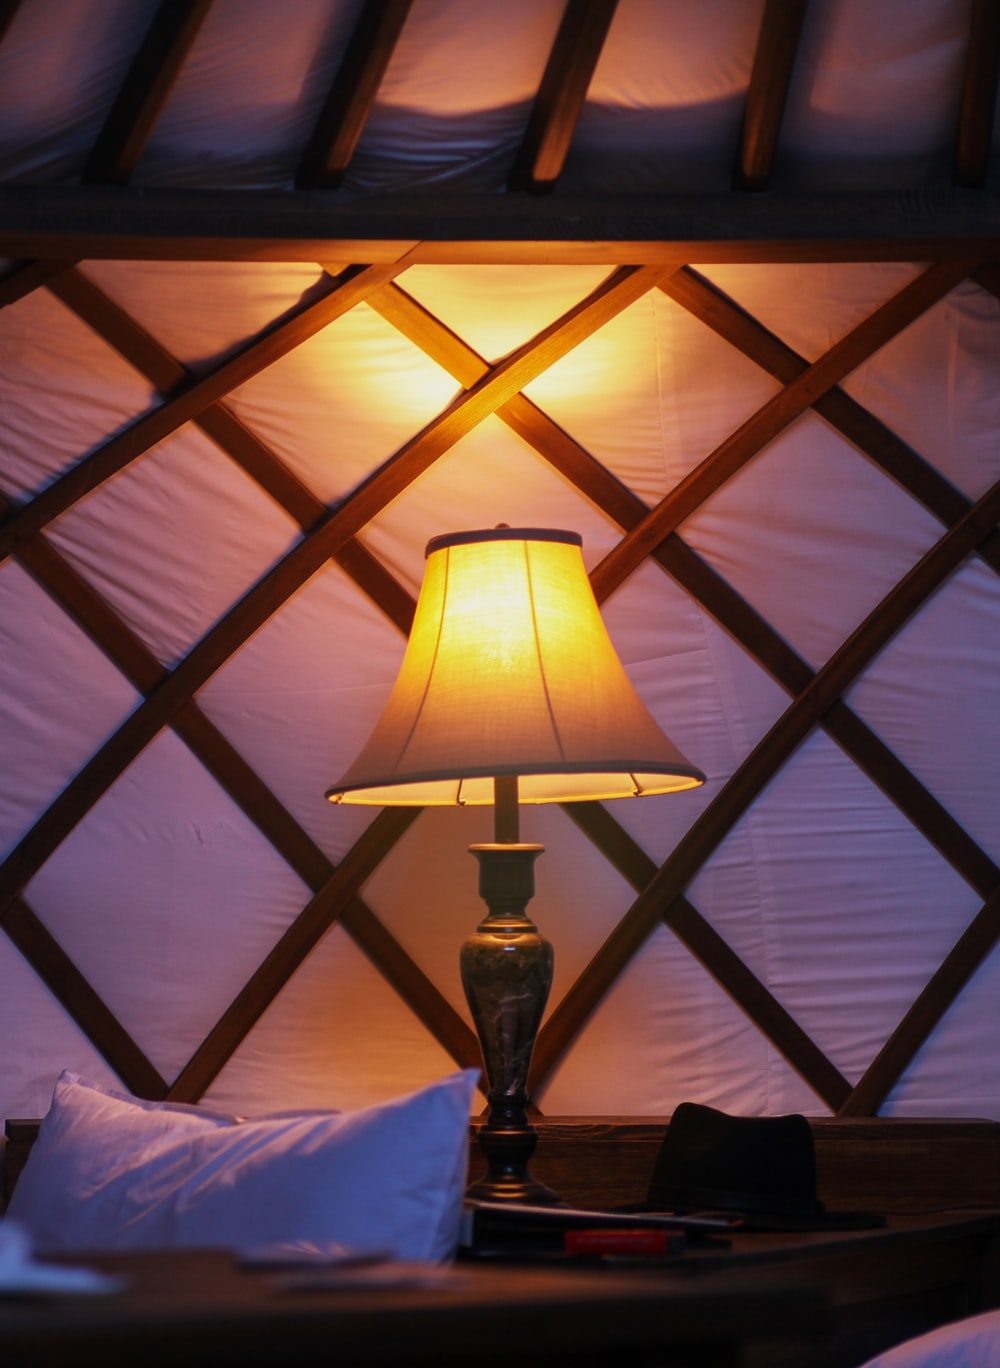 brown table lamp on brown wooden table